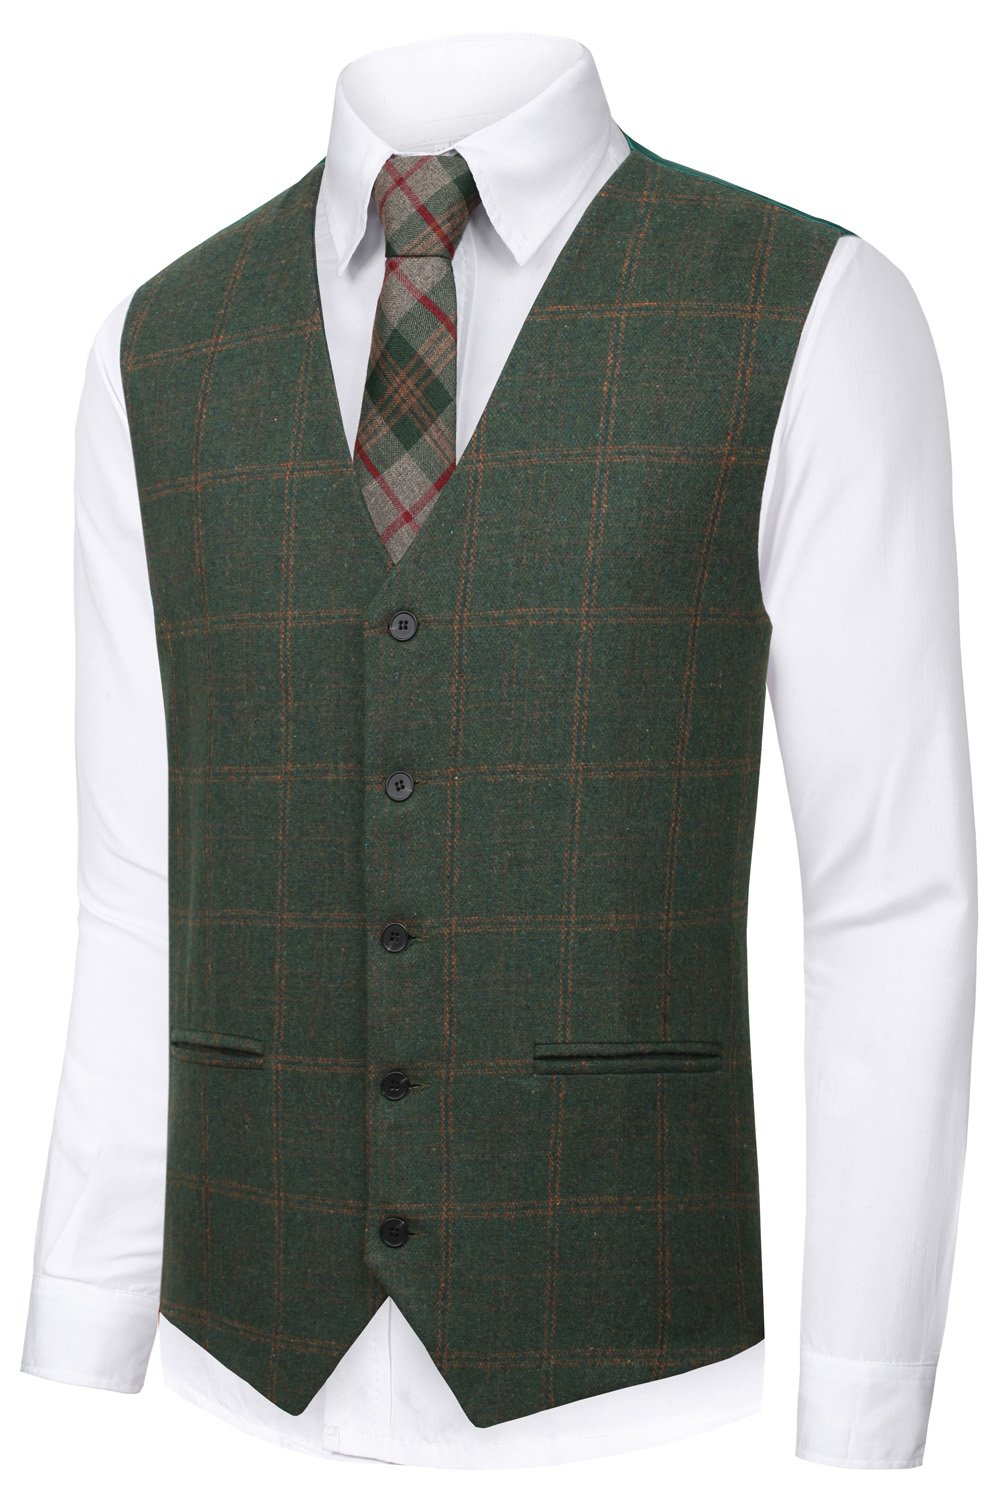 Hanayome Men's Waistcoat V-Nek 5 Button Regular Fit Wedding Tweed Plaid Suit Vest VS59 (Green,XXL)